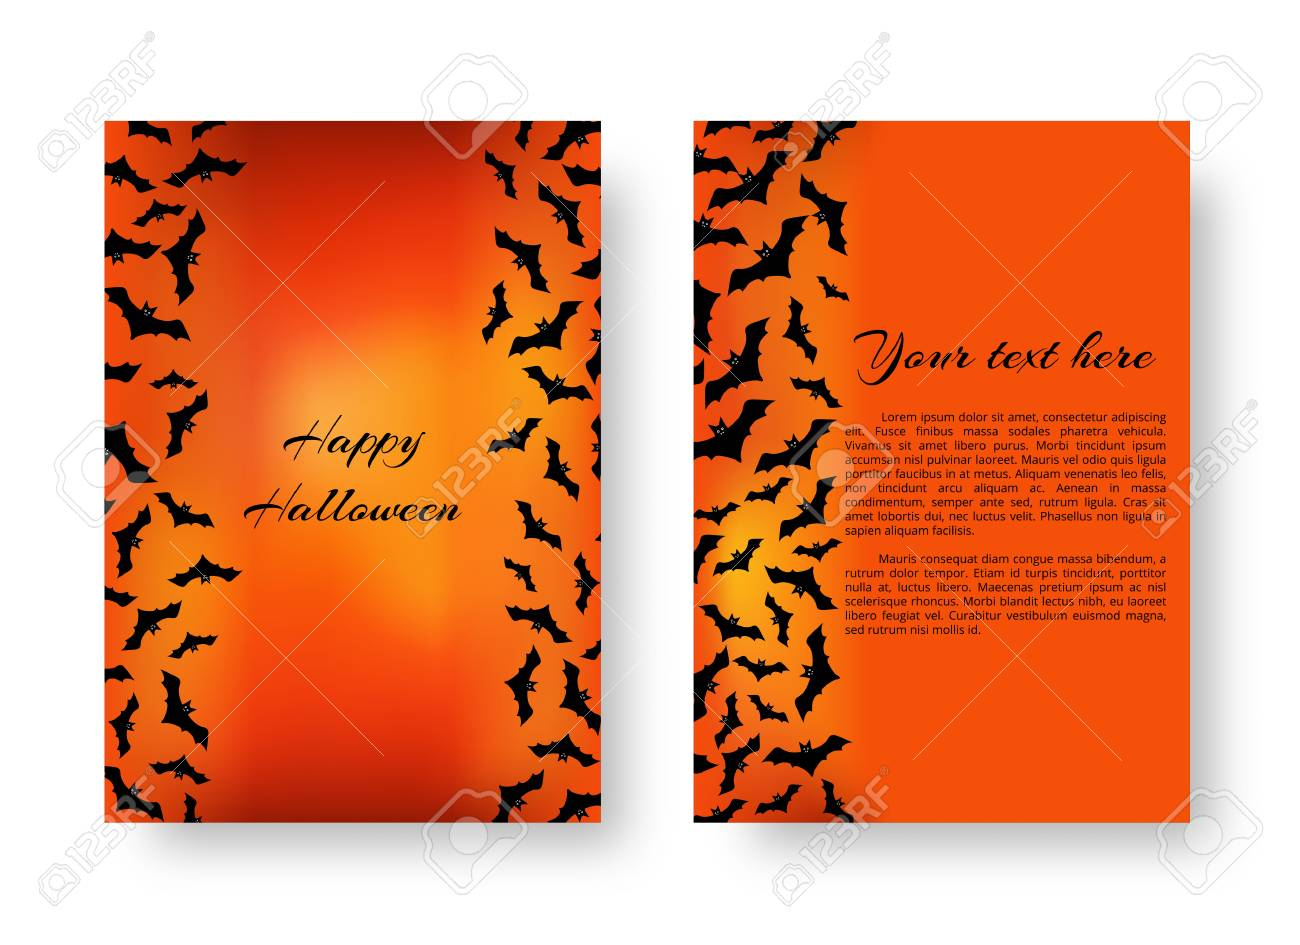 Scary Greeting Card Template With Black Bats For Festive Halloween - Free Online Christmas Photo Card Maker Printable